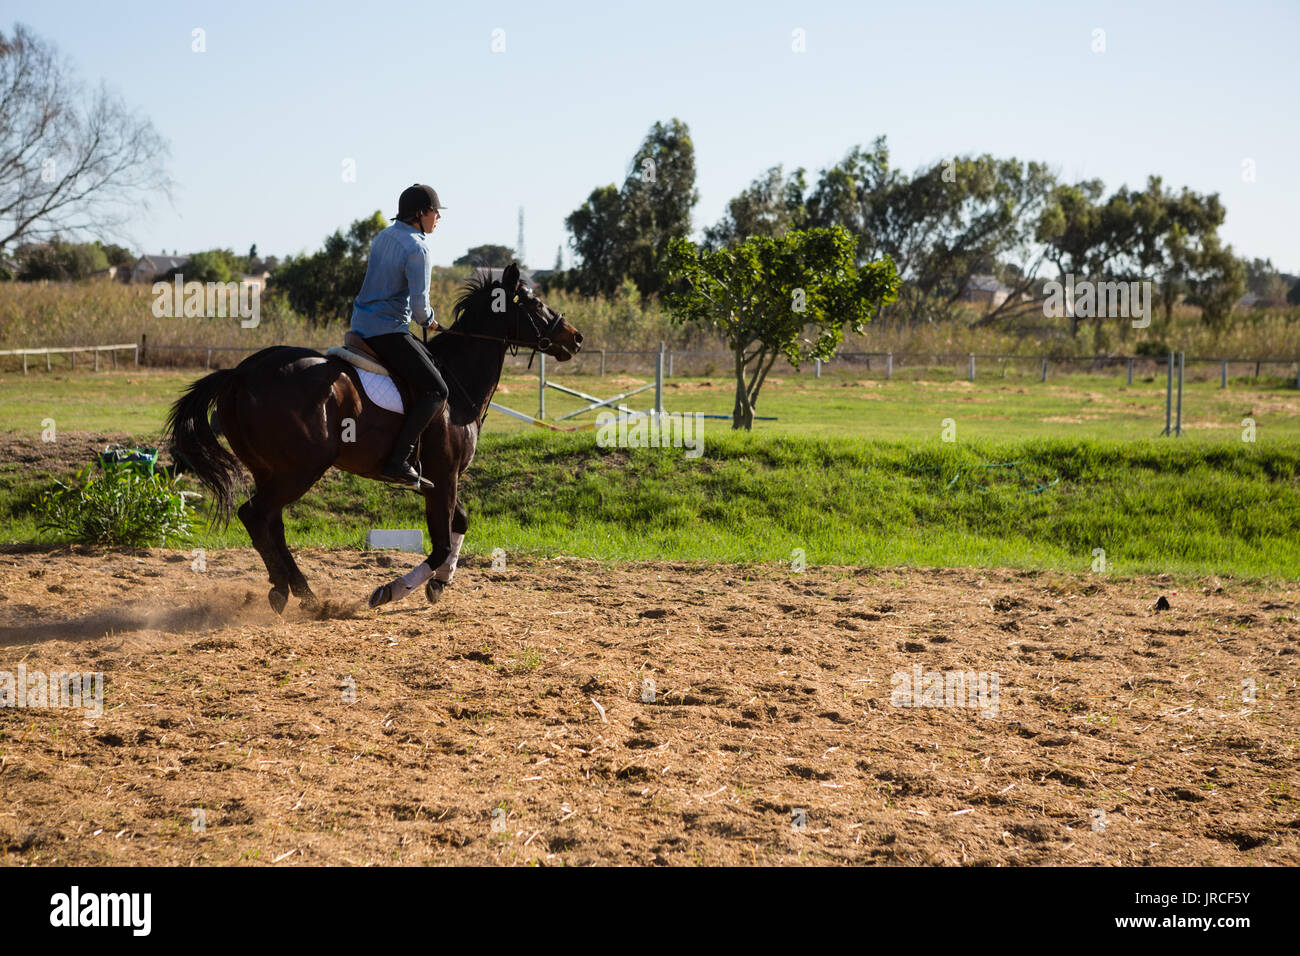 Male jockey riding a horse in the ranch on a sunny day - Stock Image